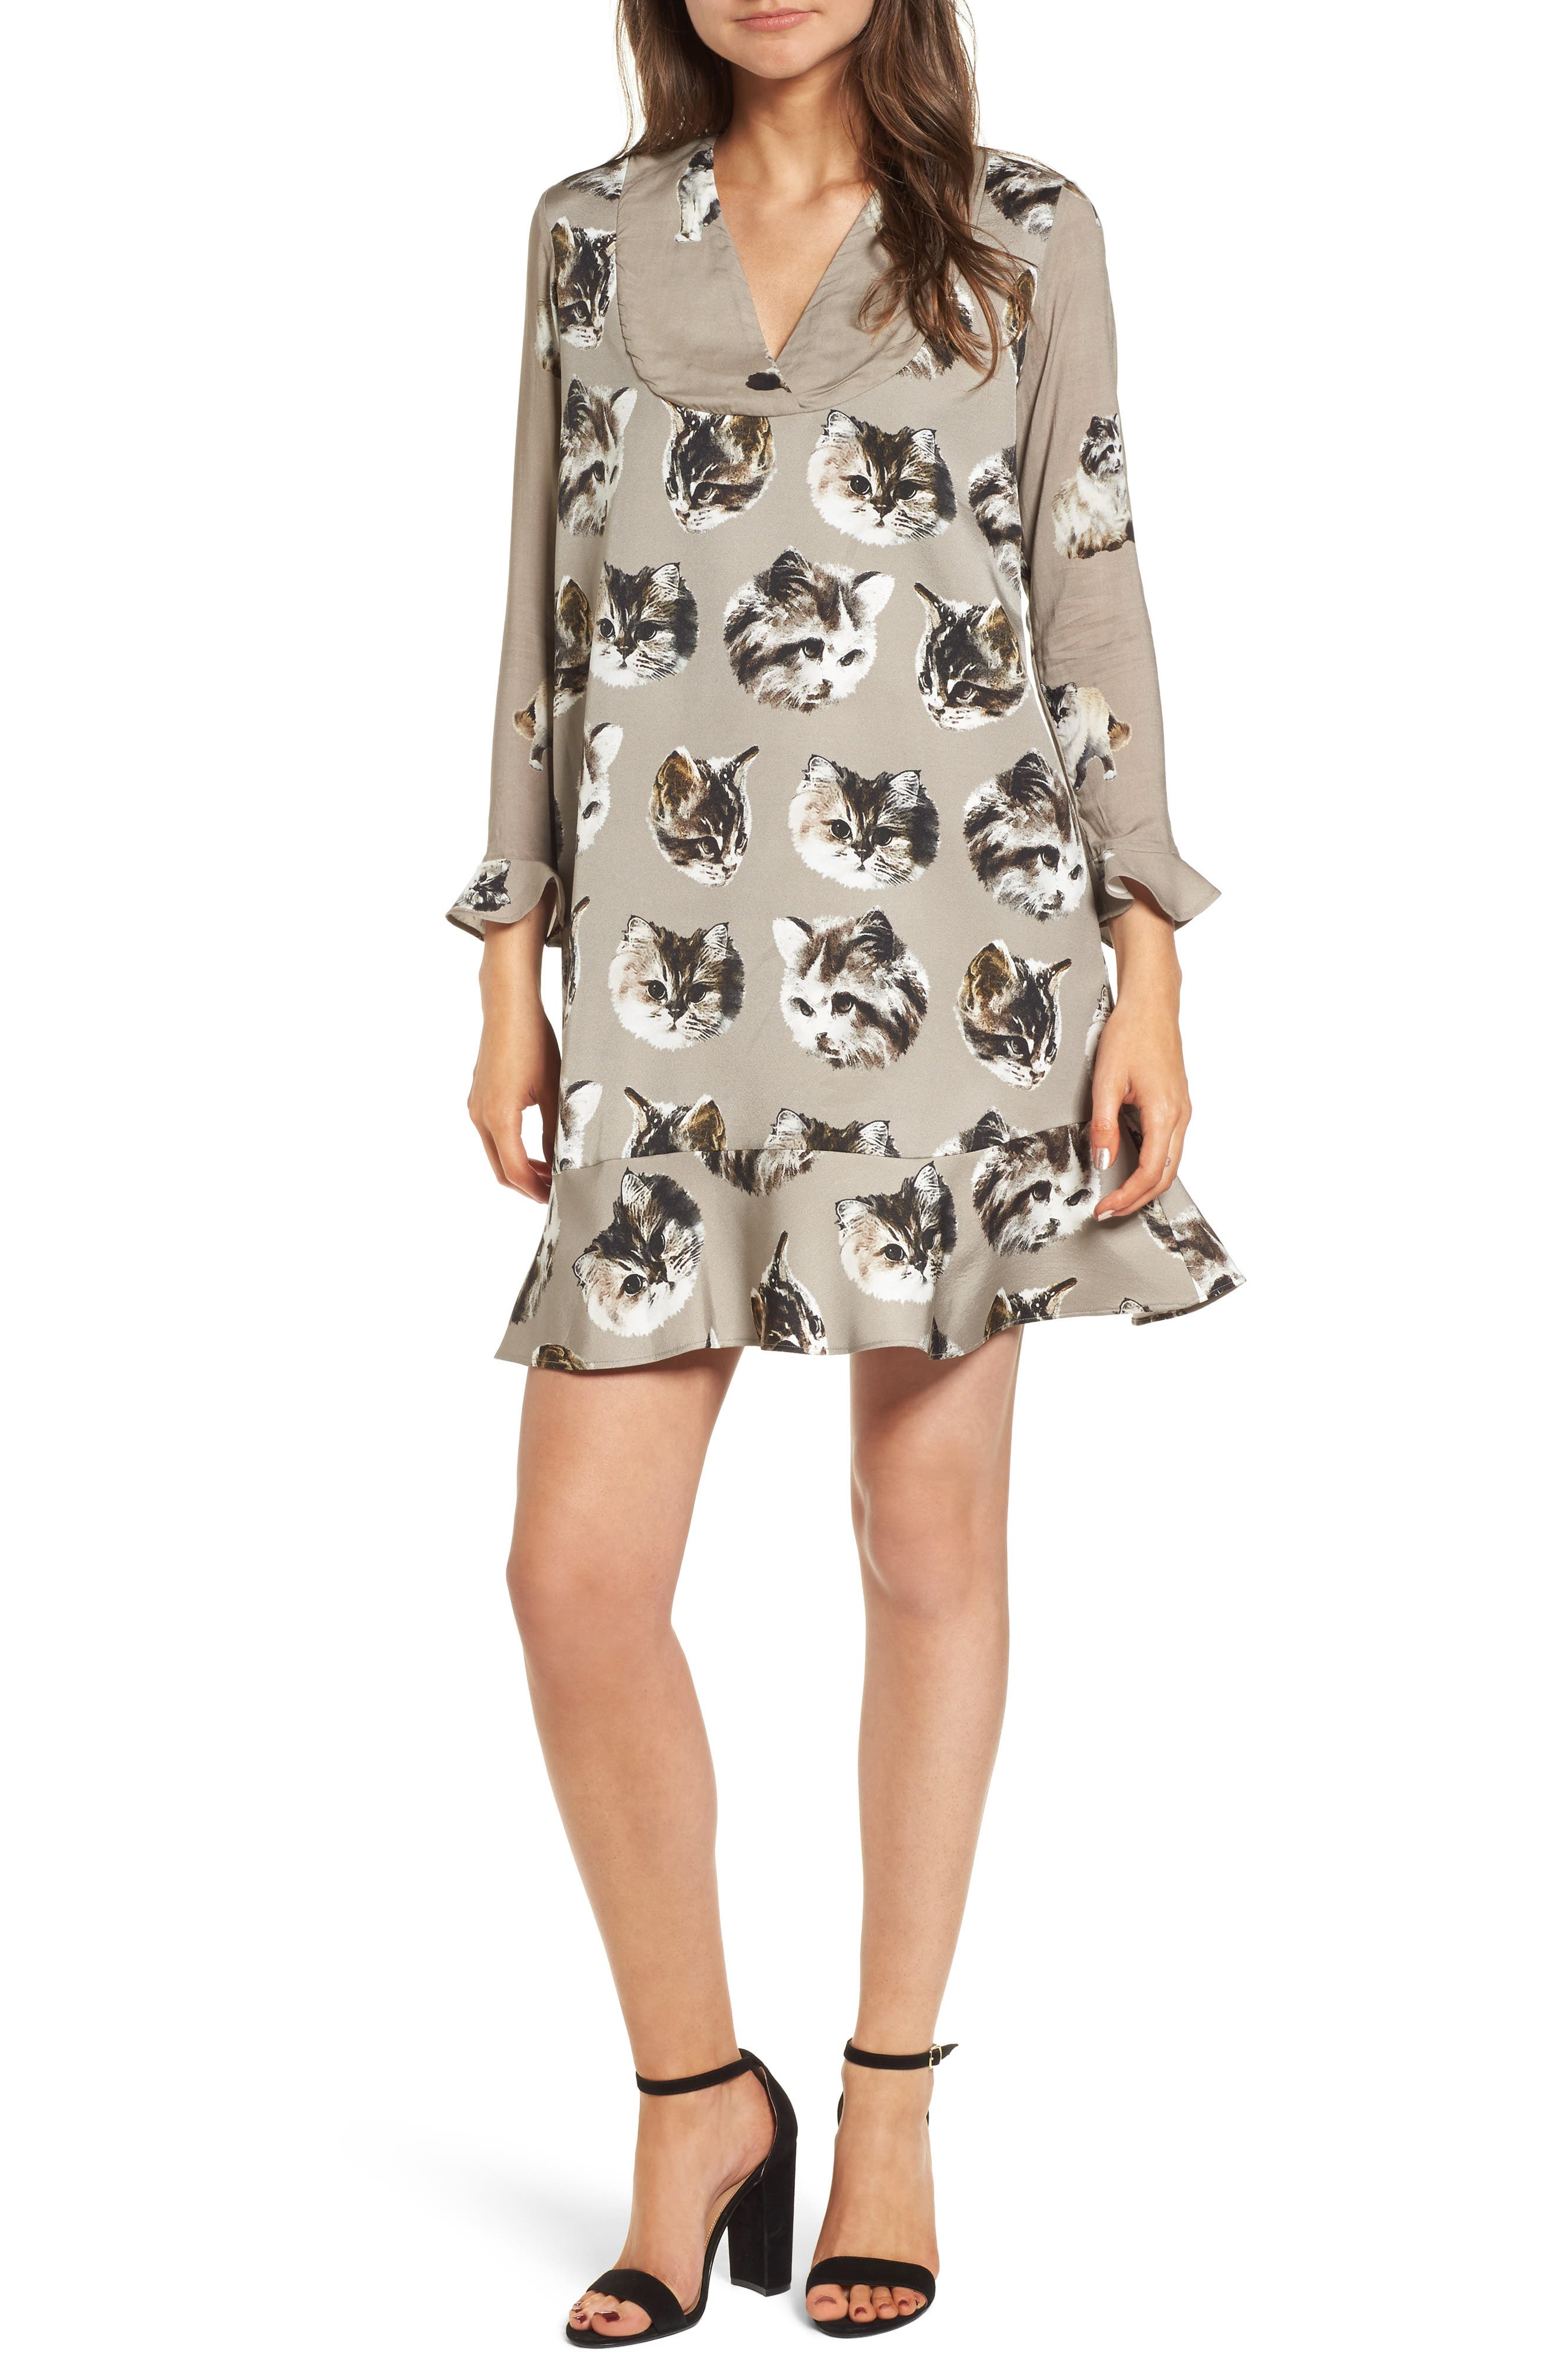 Paul & Joe Sister Hilda Shift Dress